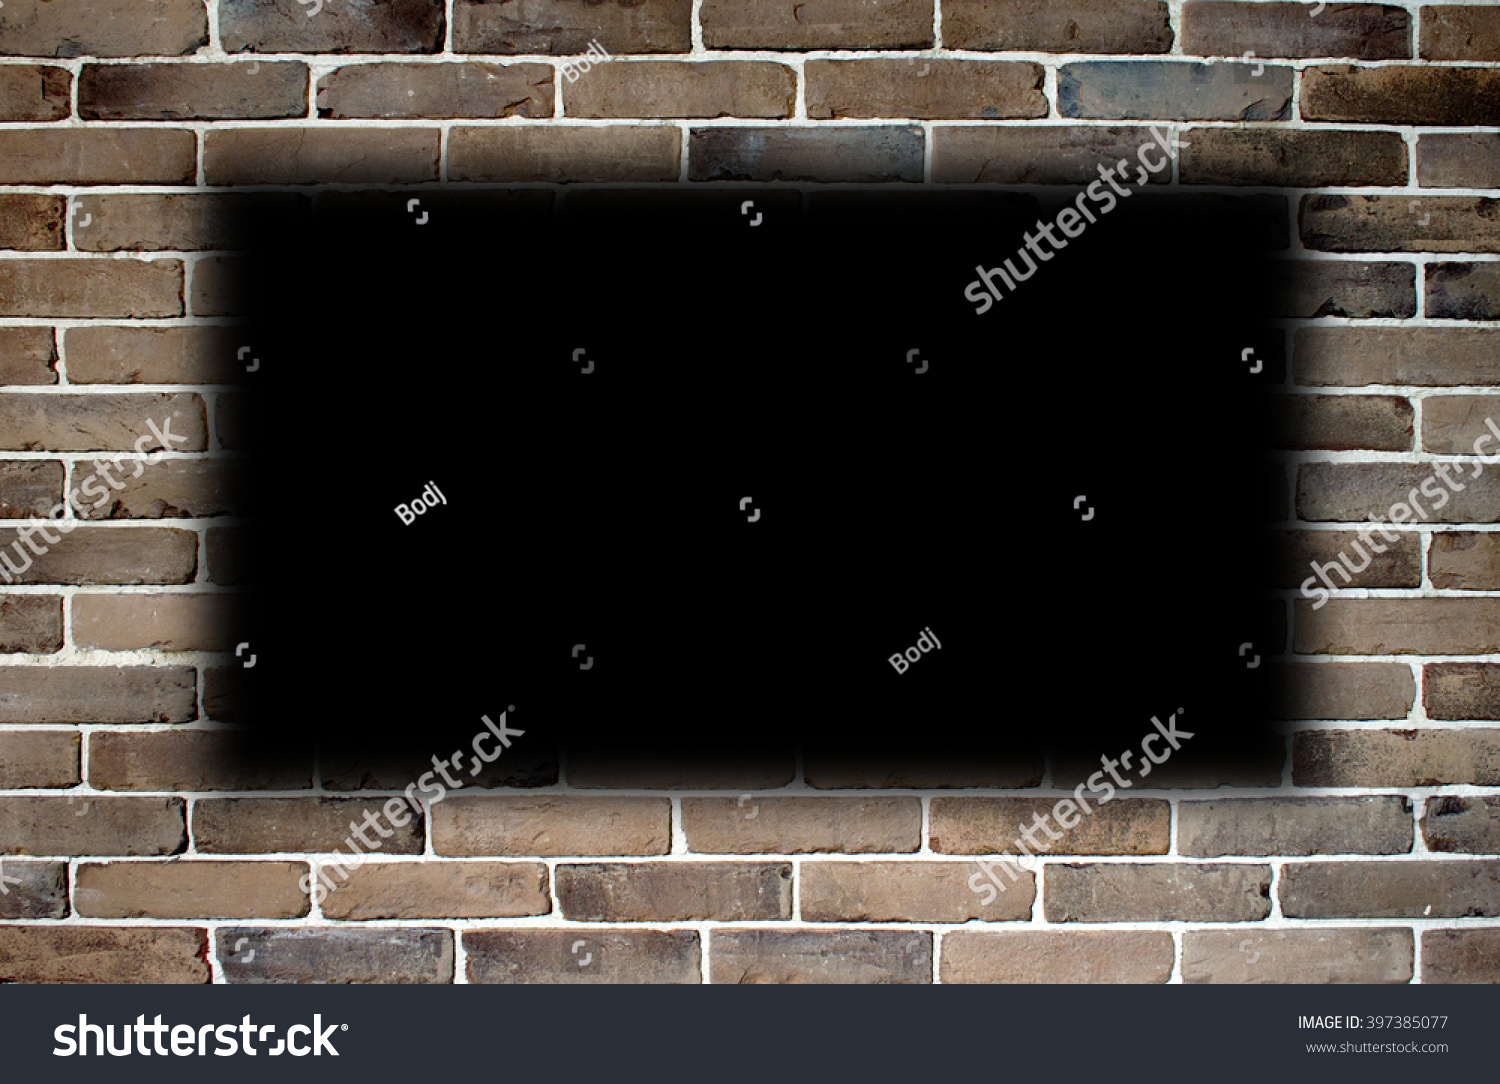 Wall Bricks Empty Space Center Stock Photo 397385077